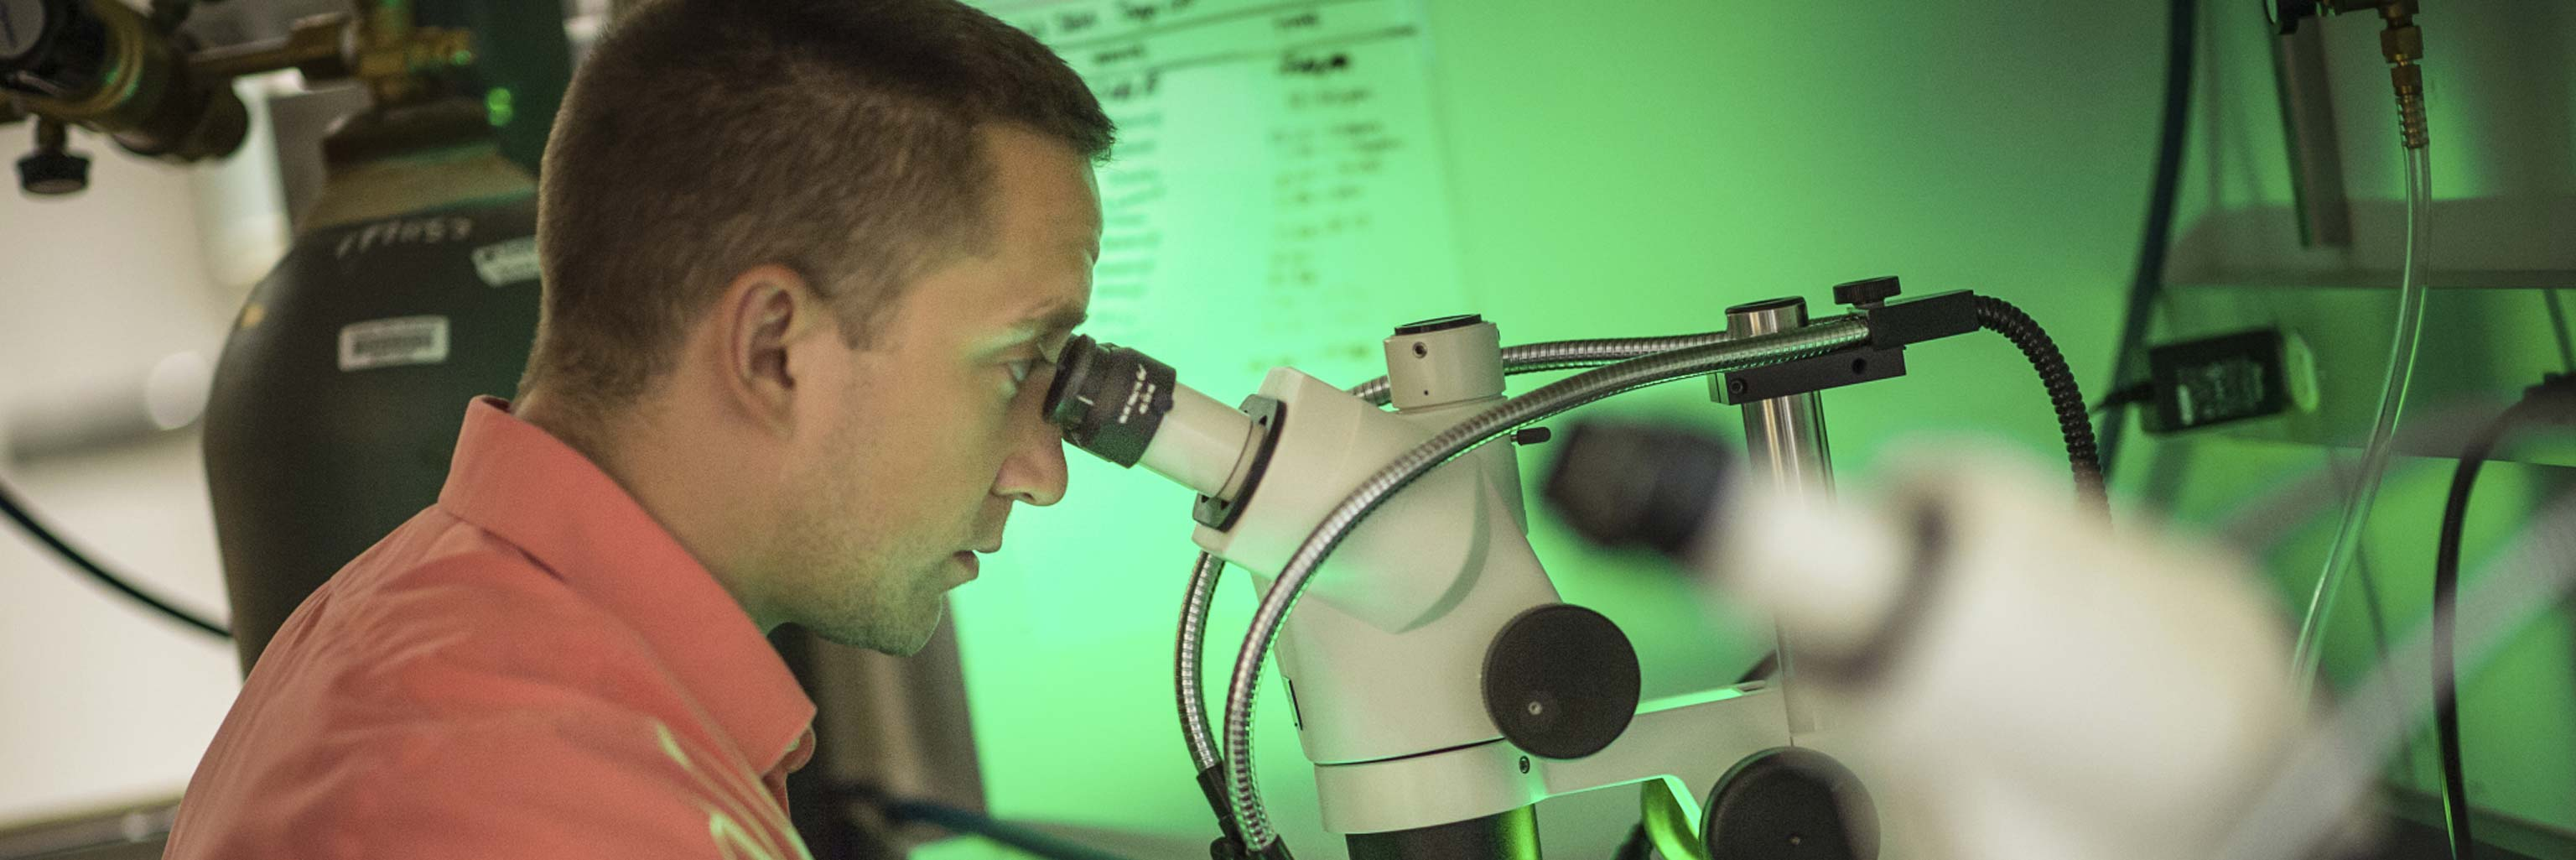 man looking into a microscope